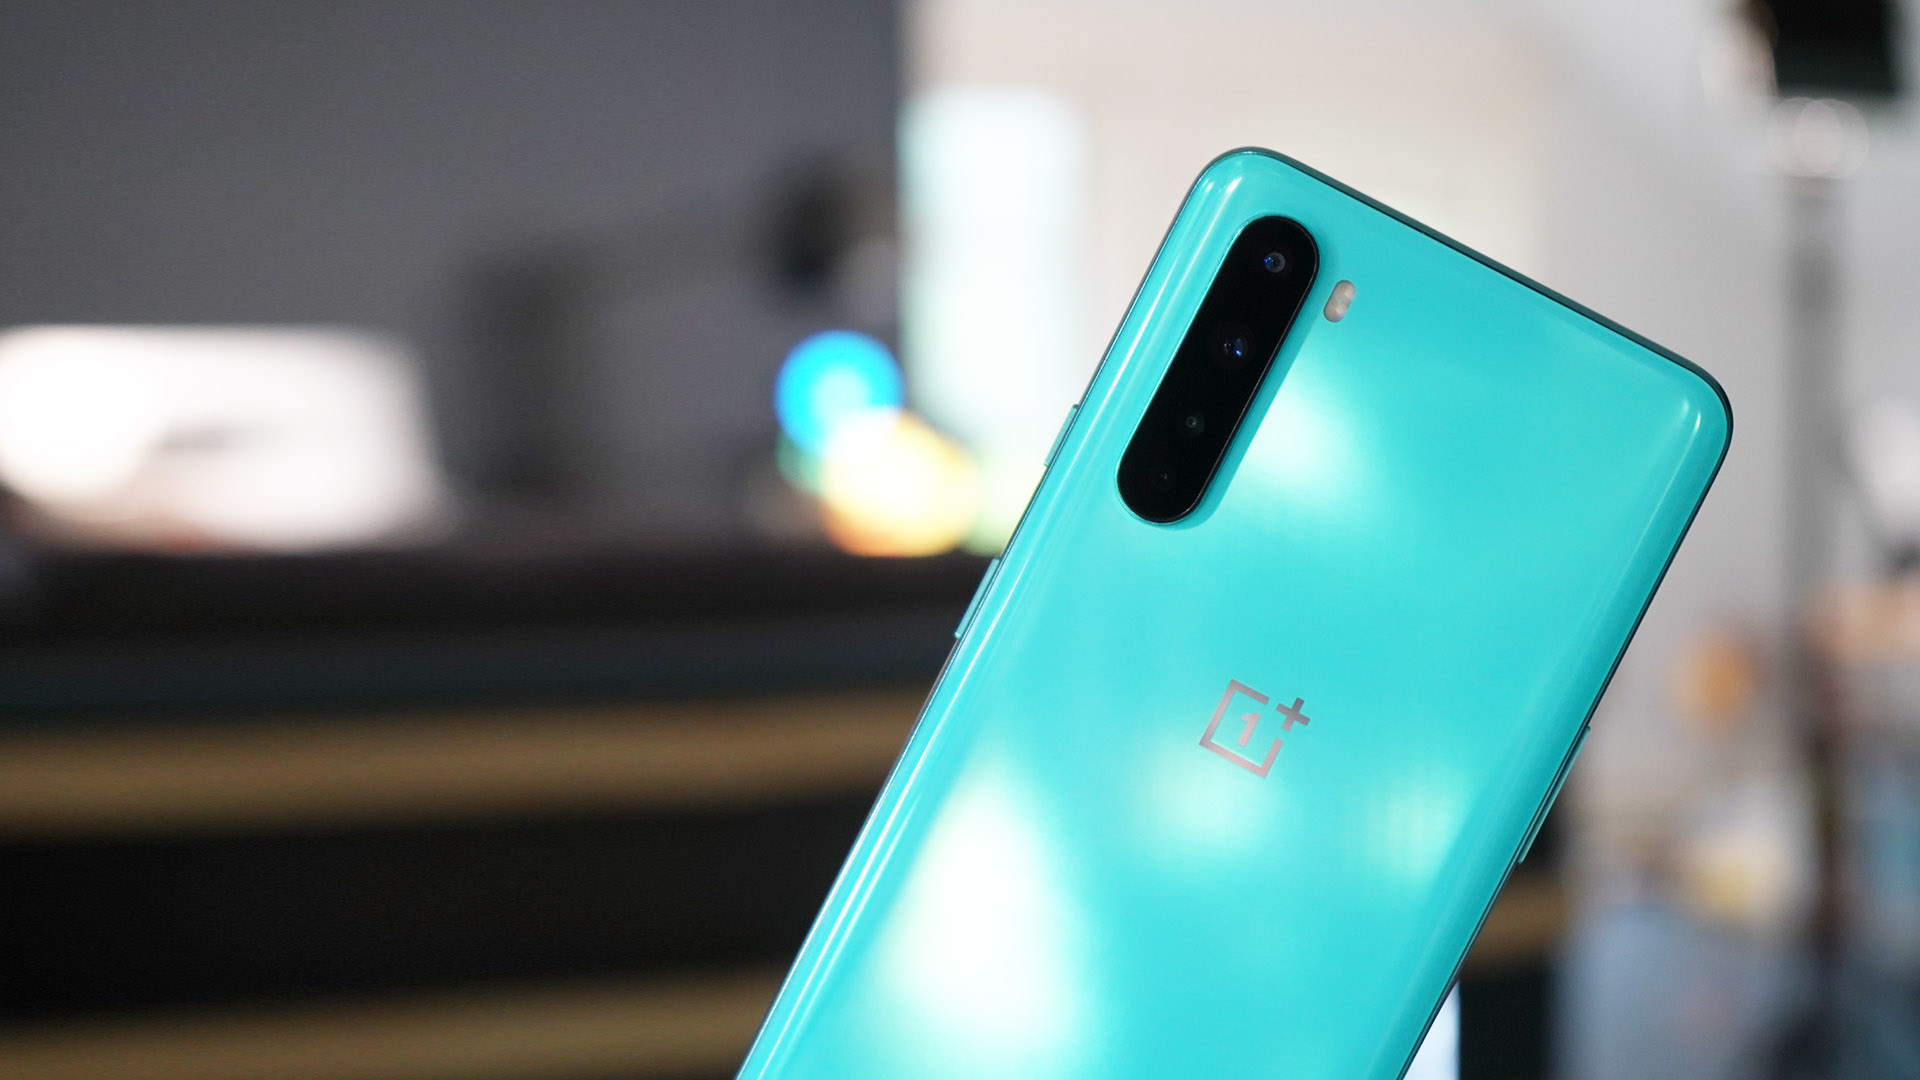 Oneplus nord camera review: the oneplus mid-ranger